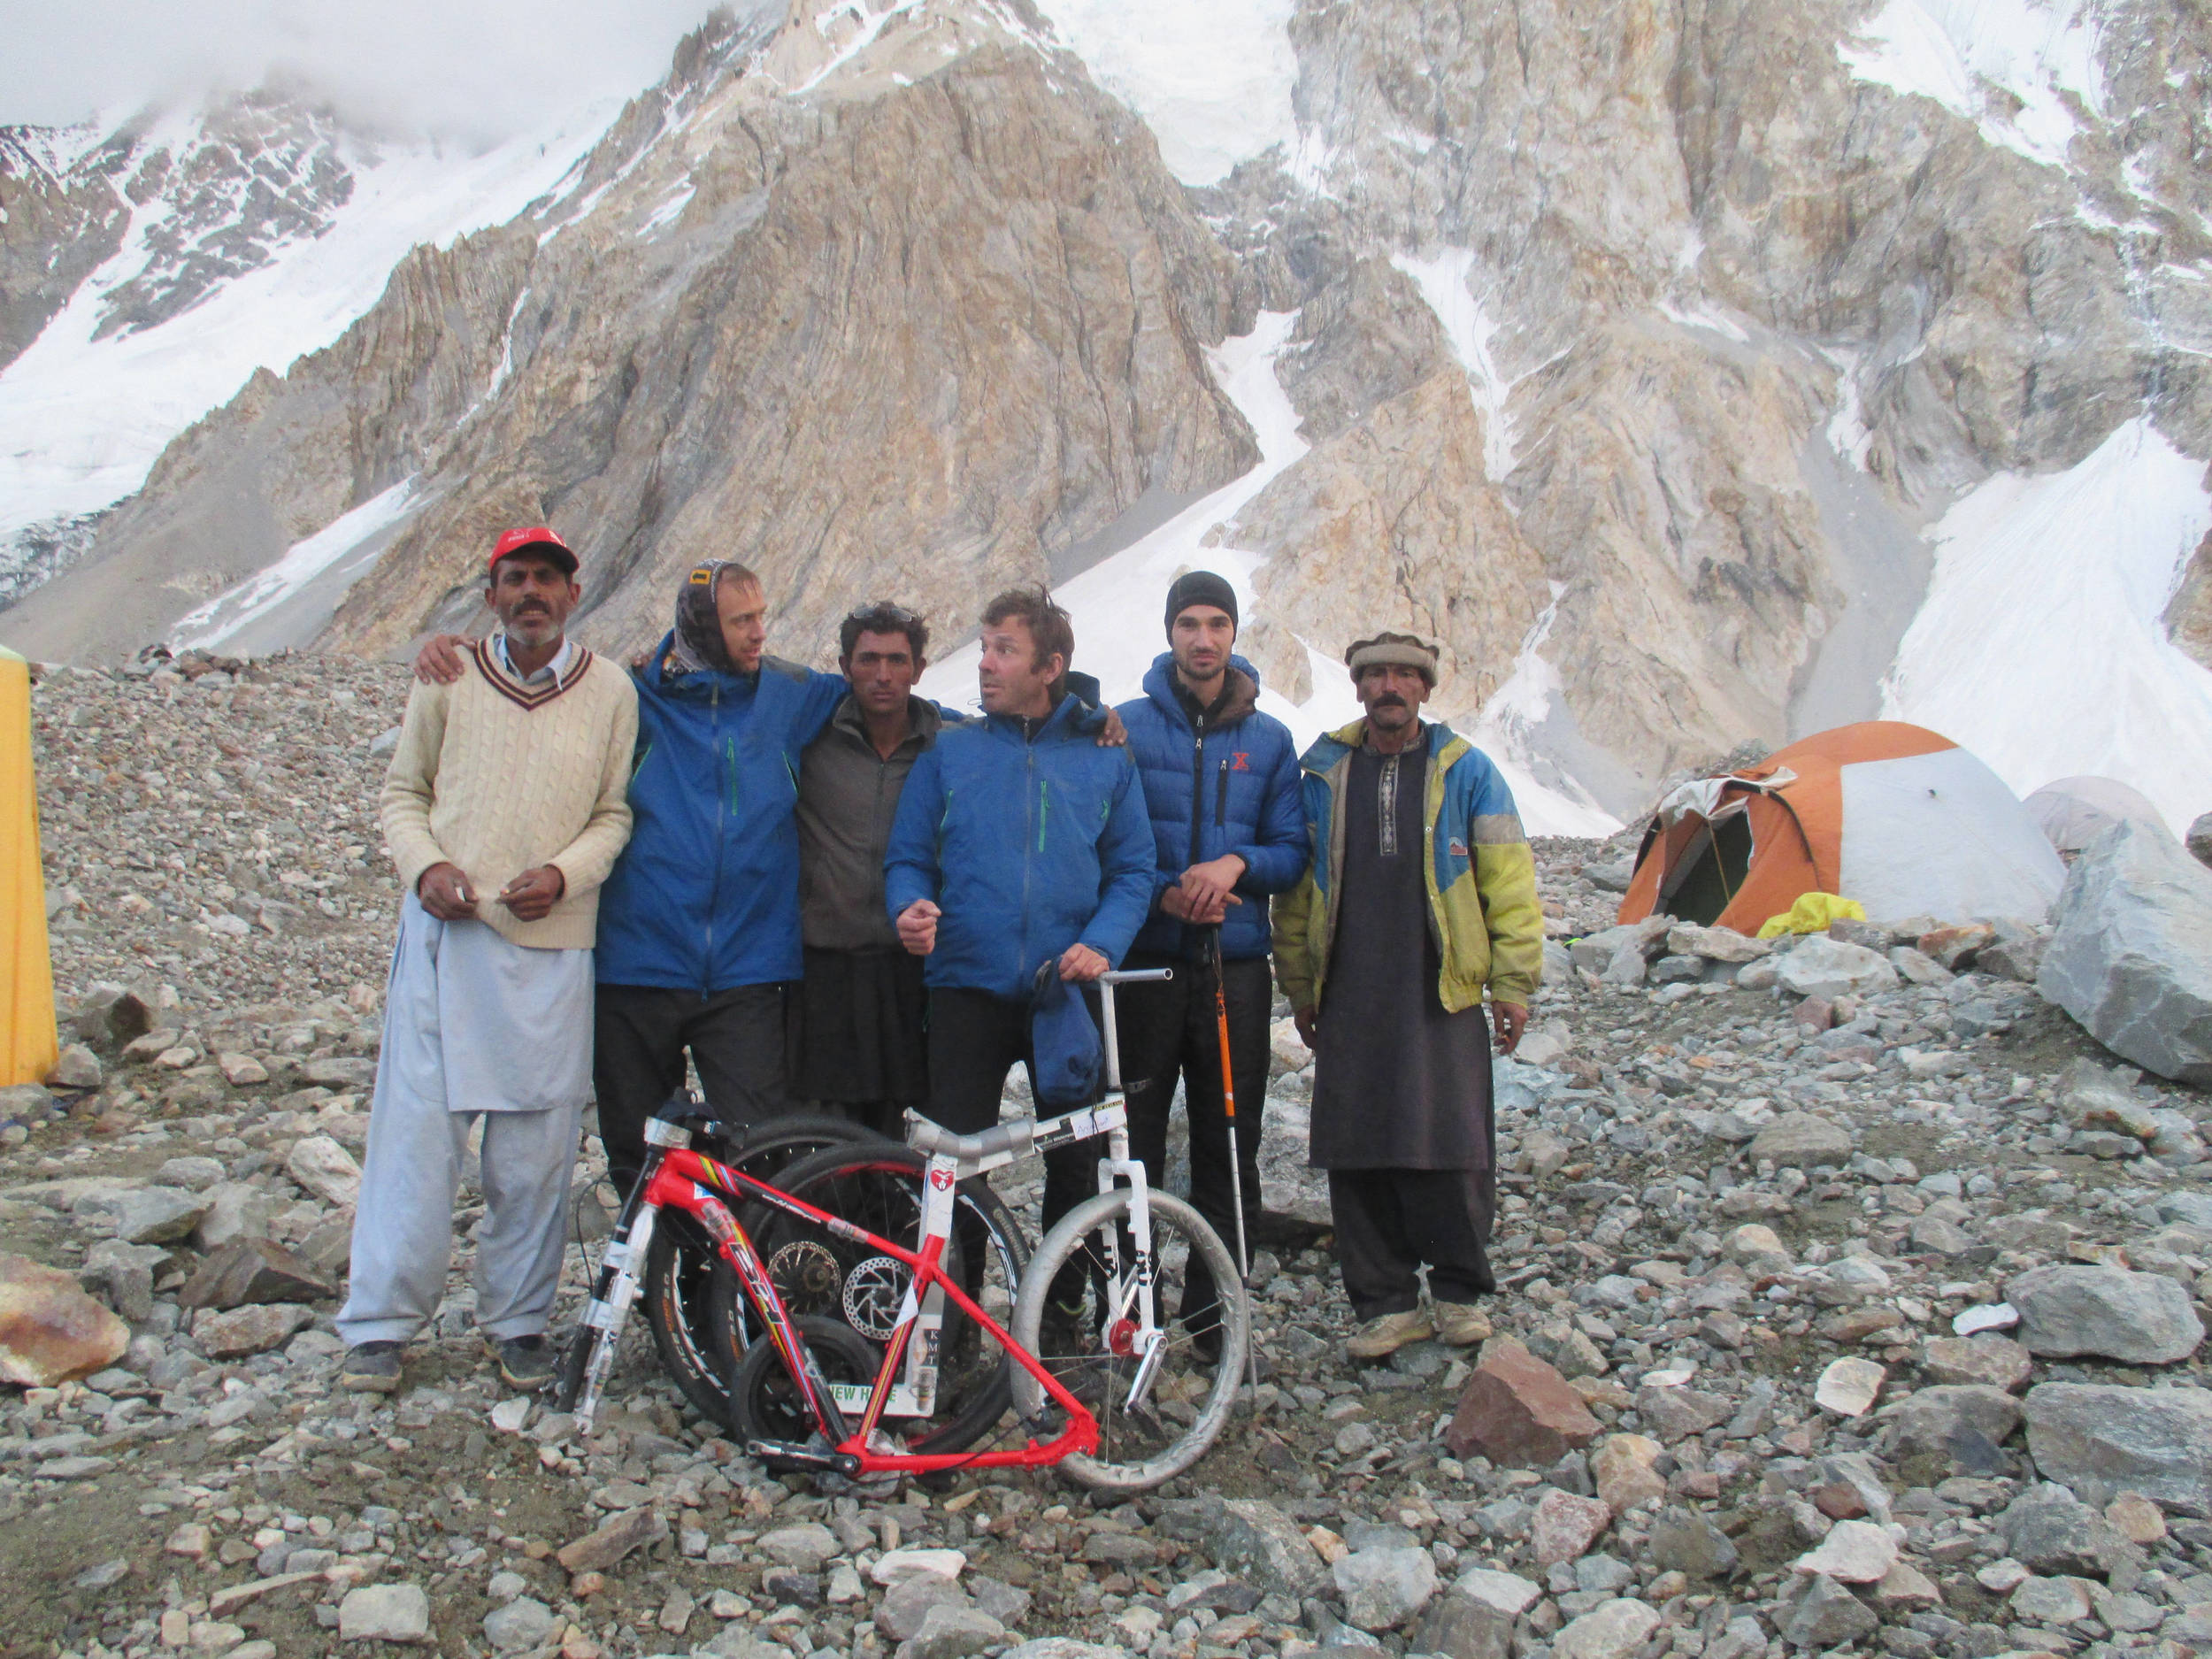 The Team at Broad Peak Base Camp